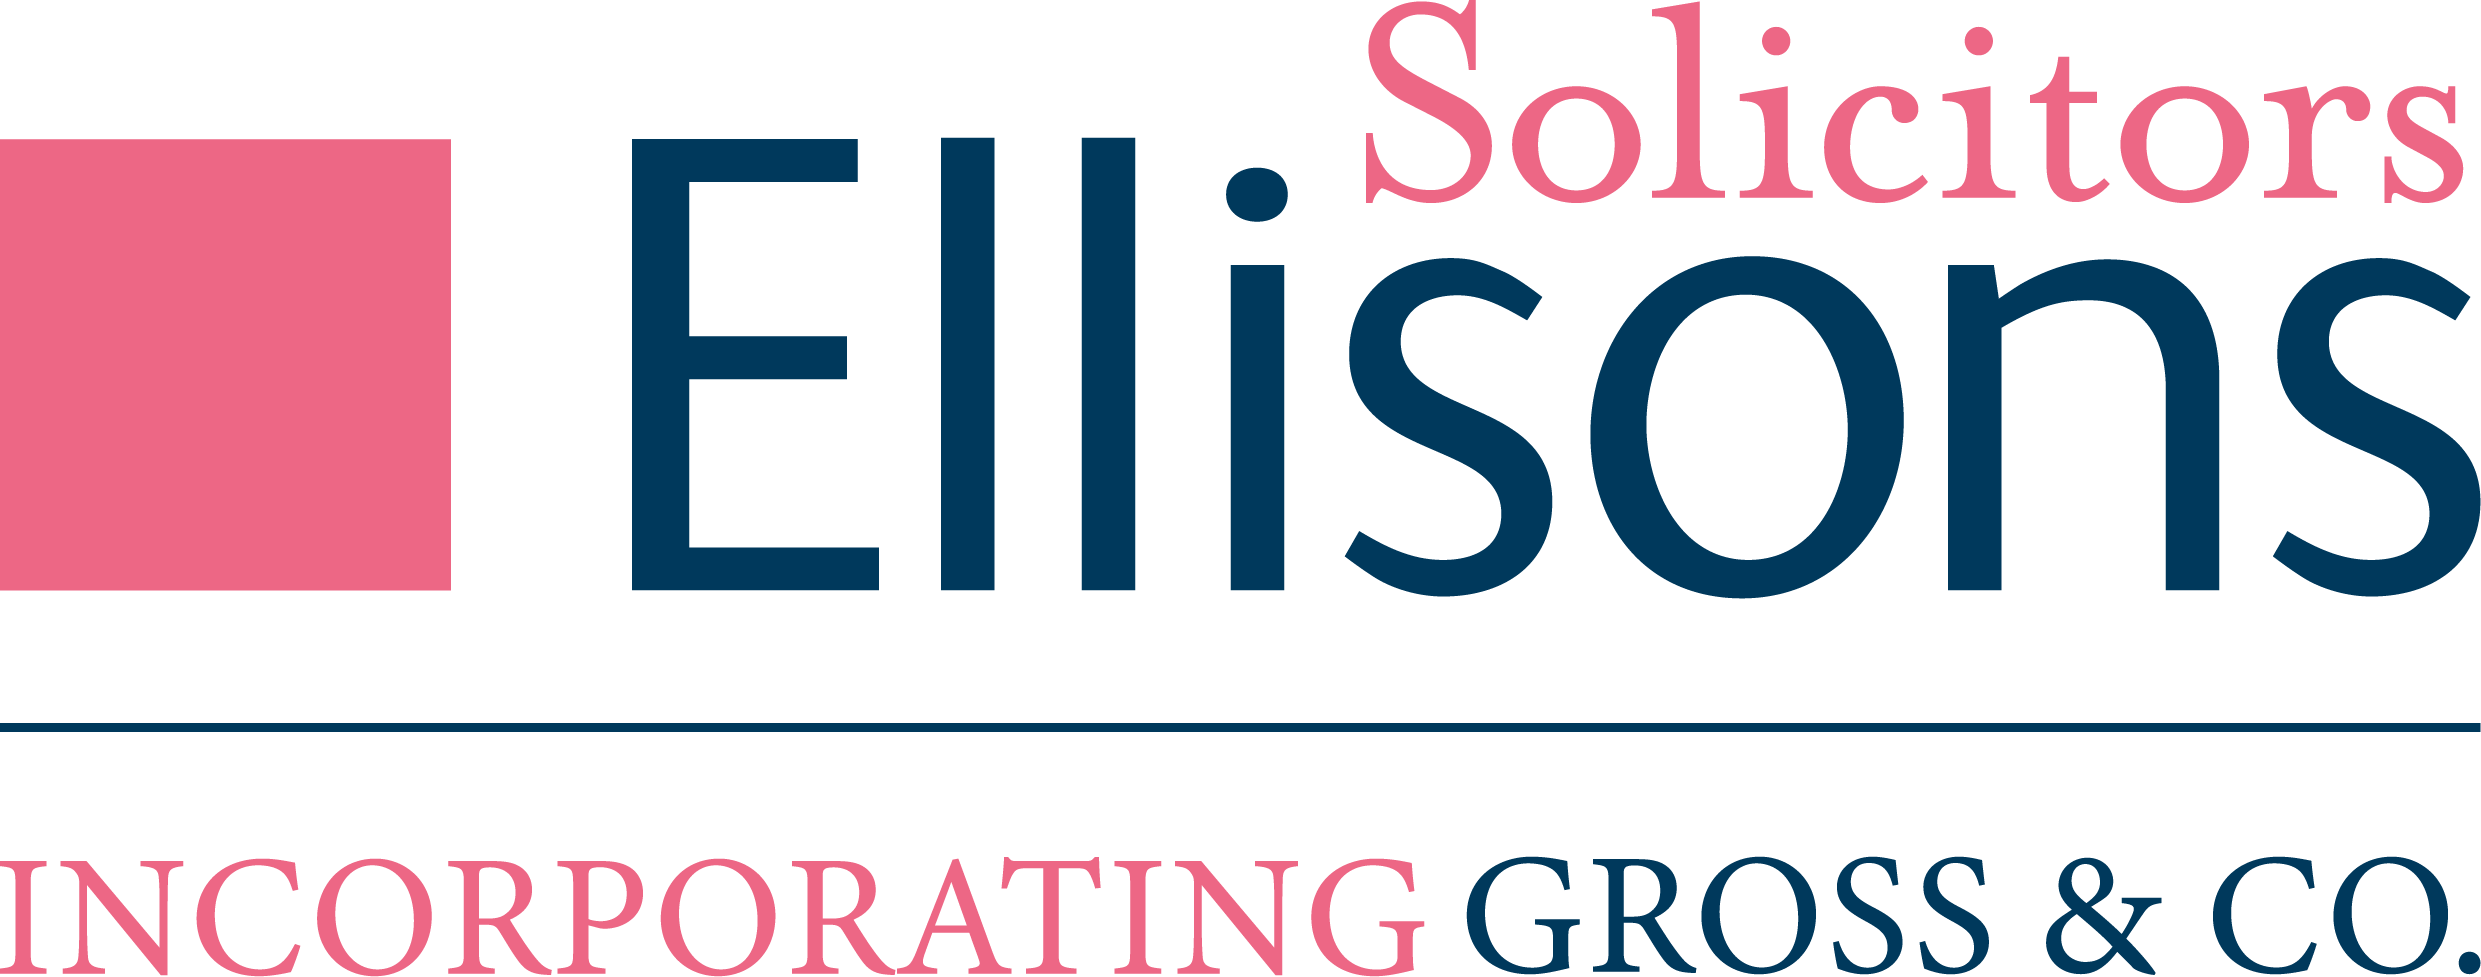 Ellisons Solicitors incorporating Gross & Co.